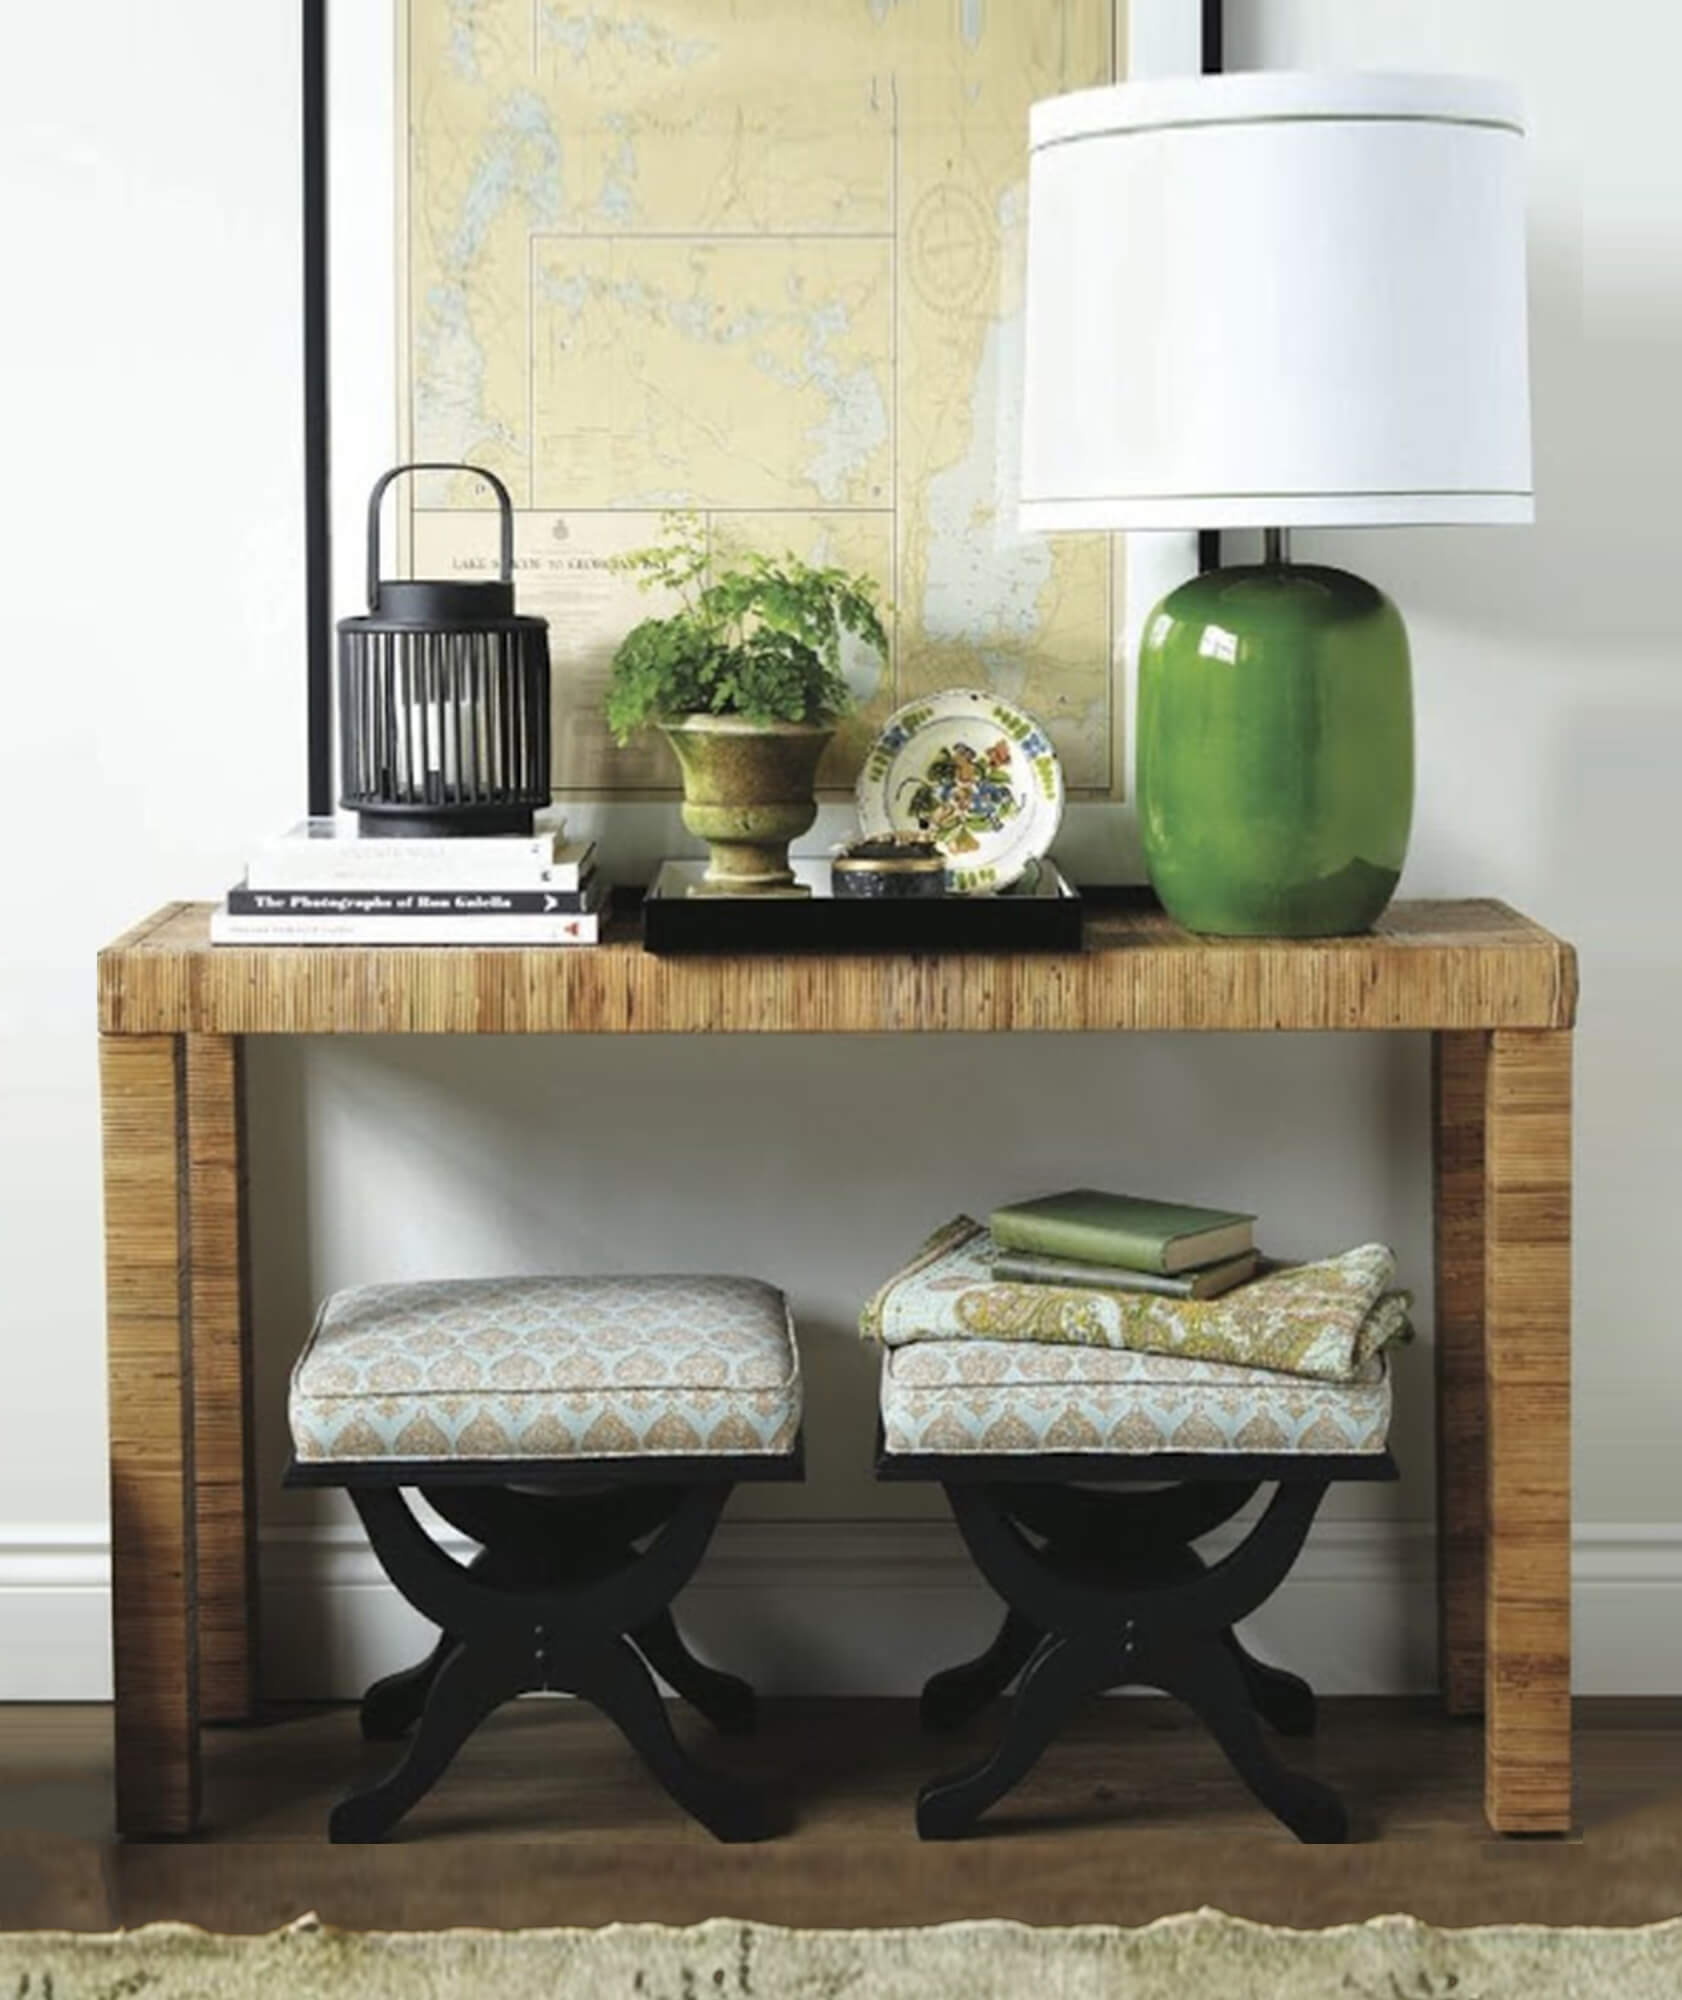 rattan console, rattan furniture